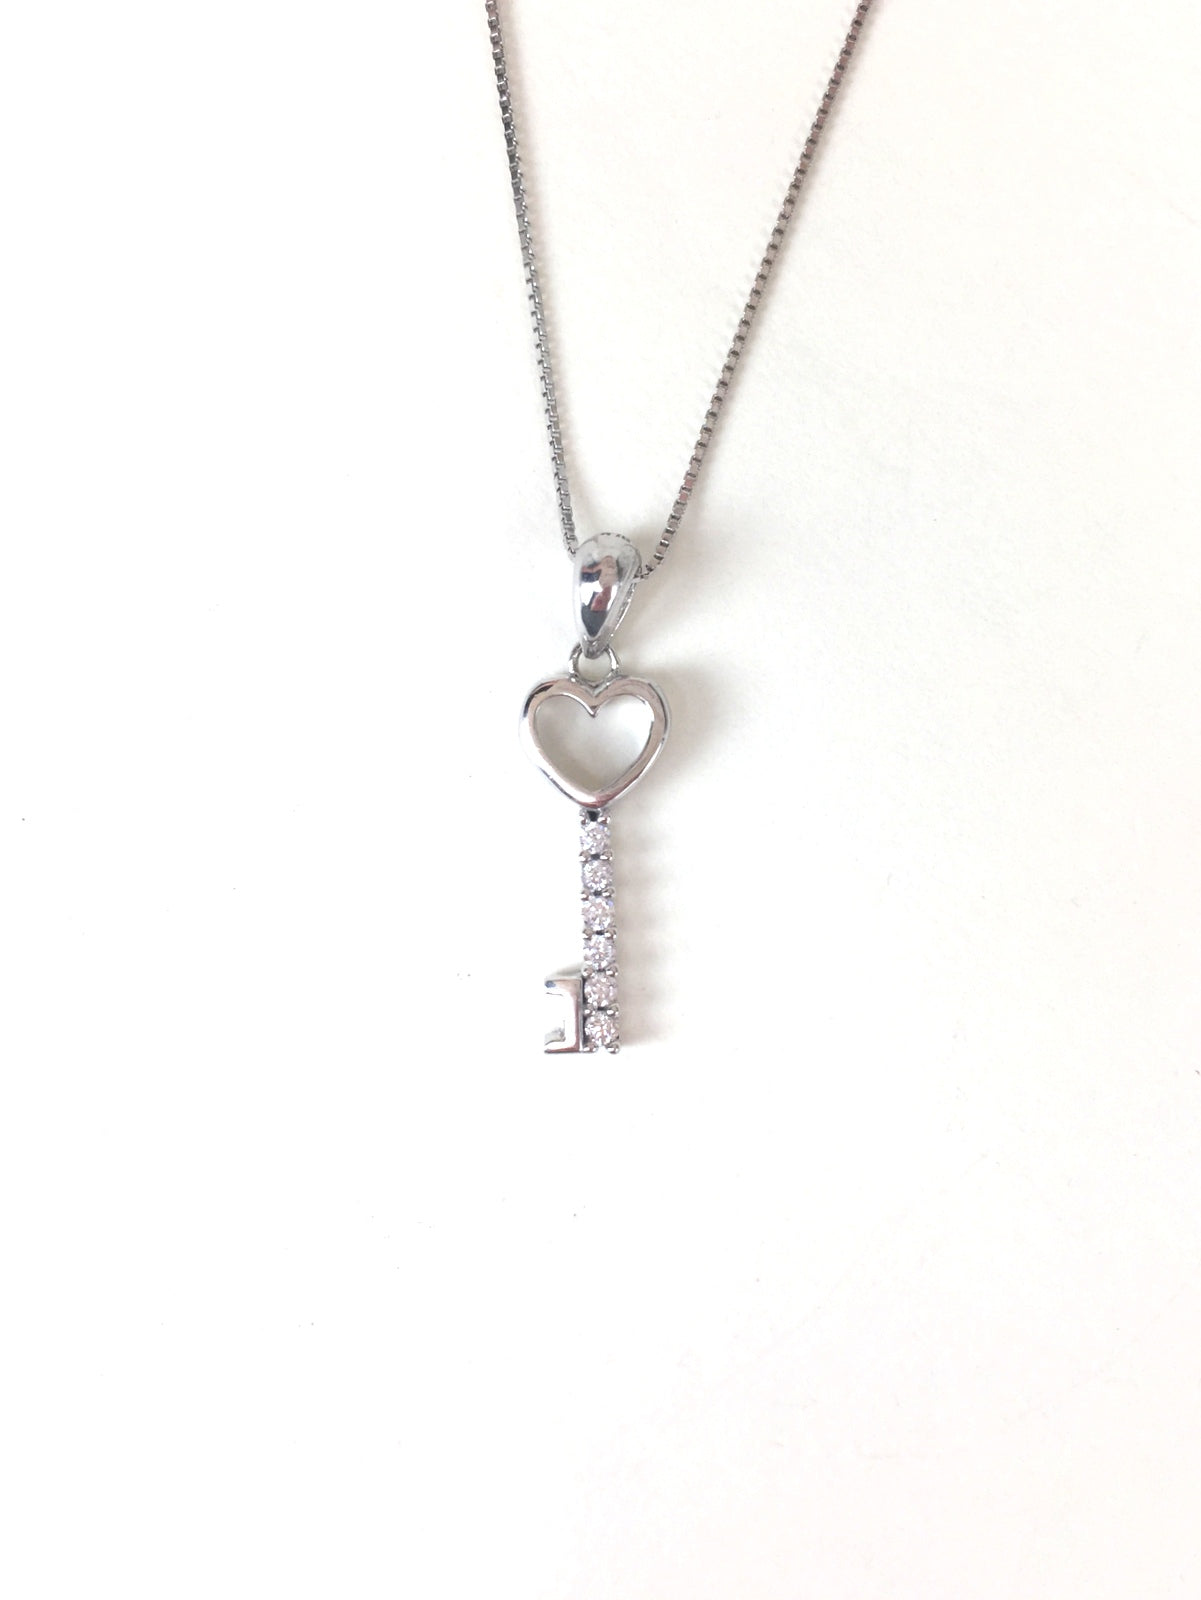 SMALL HEART KEY PAVE CZ STERLING SILVER NECKLACE